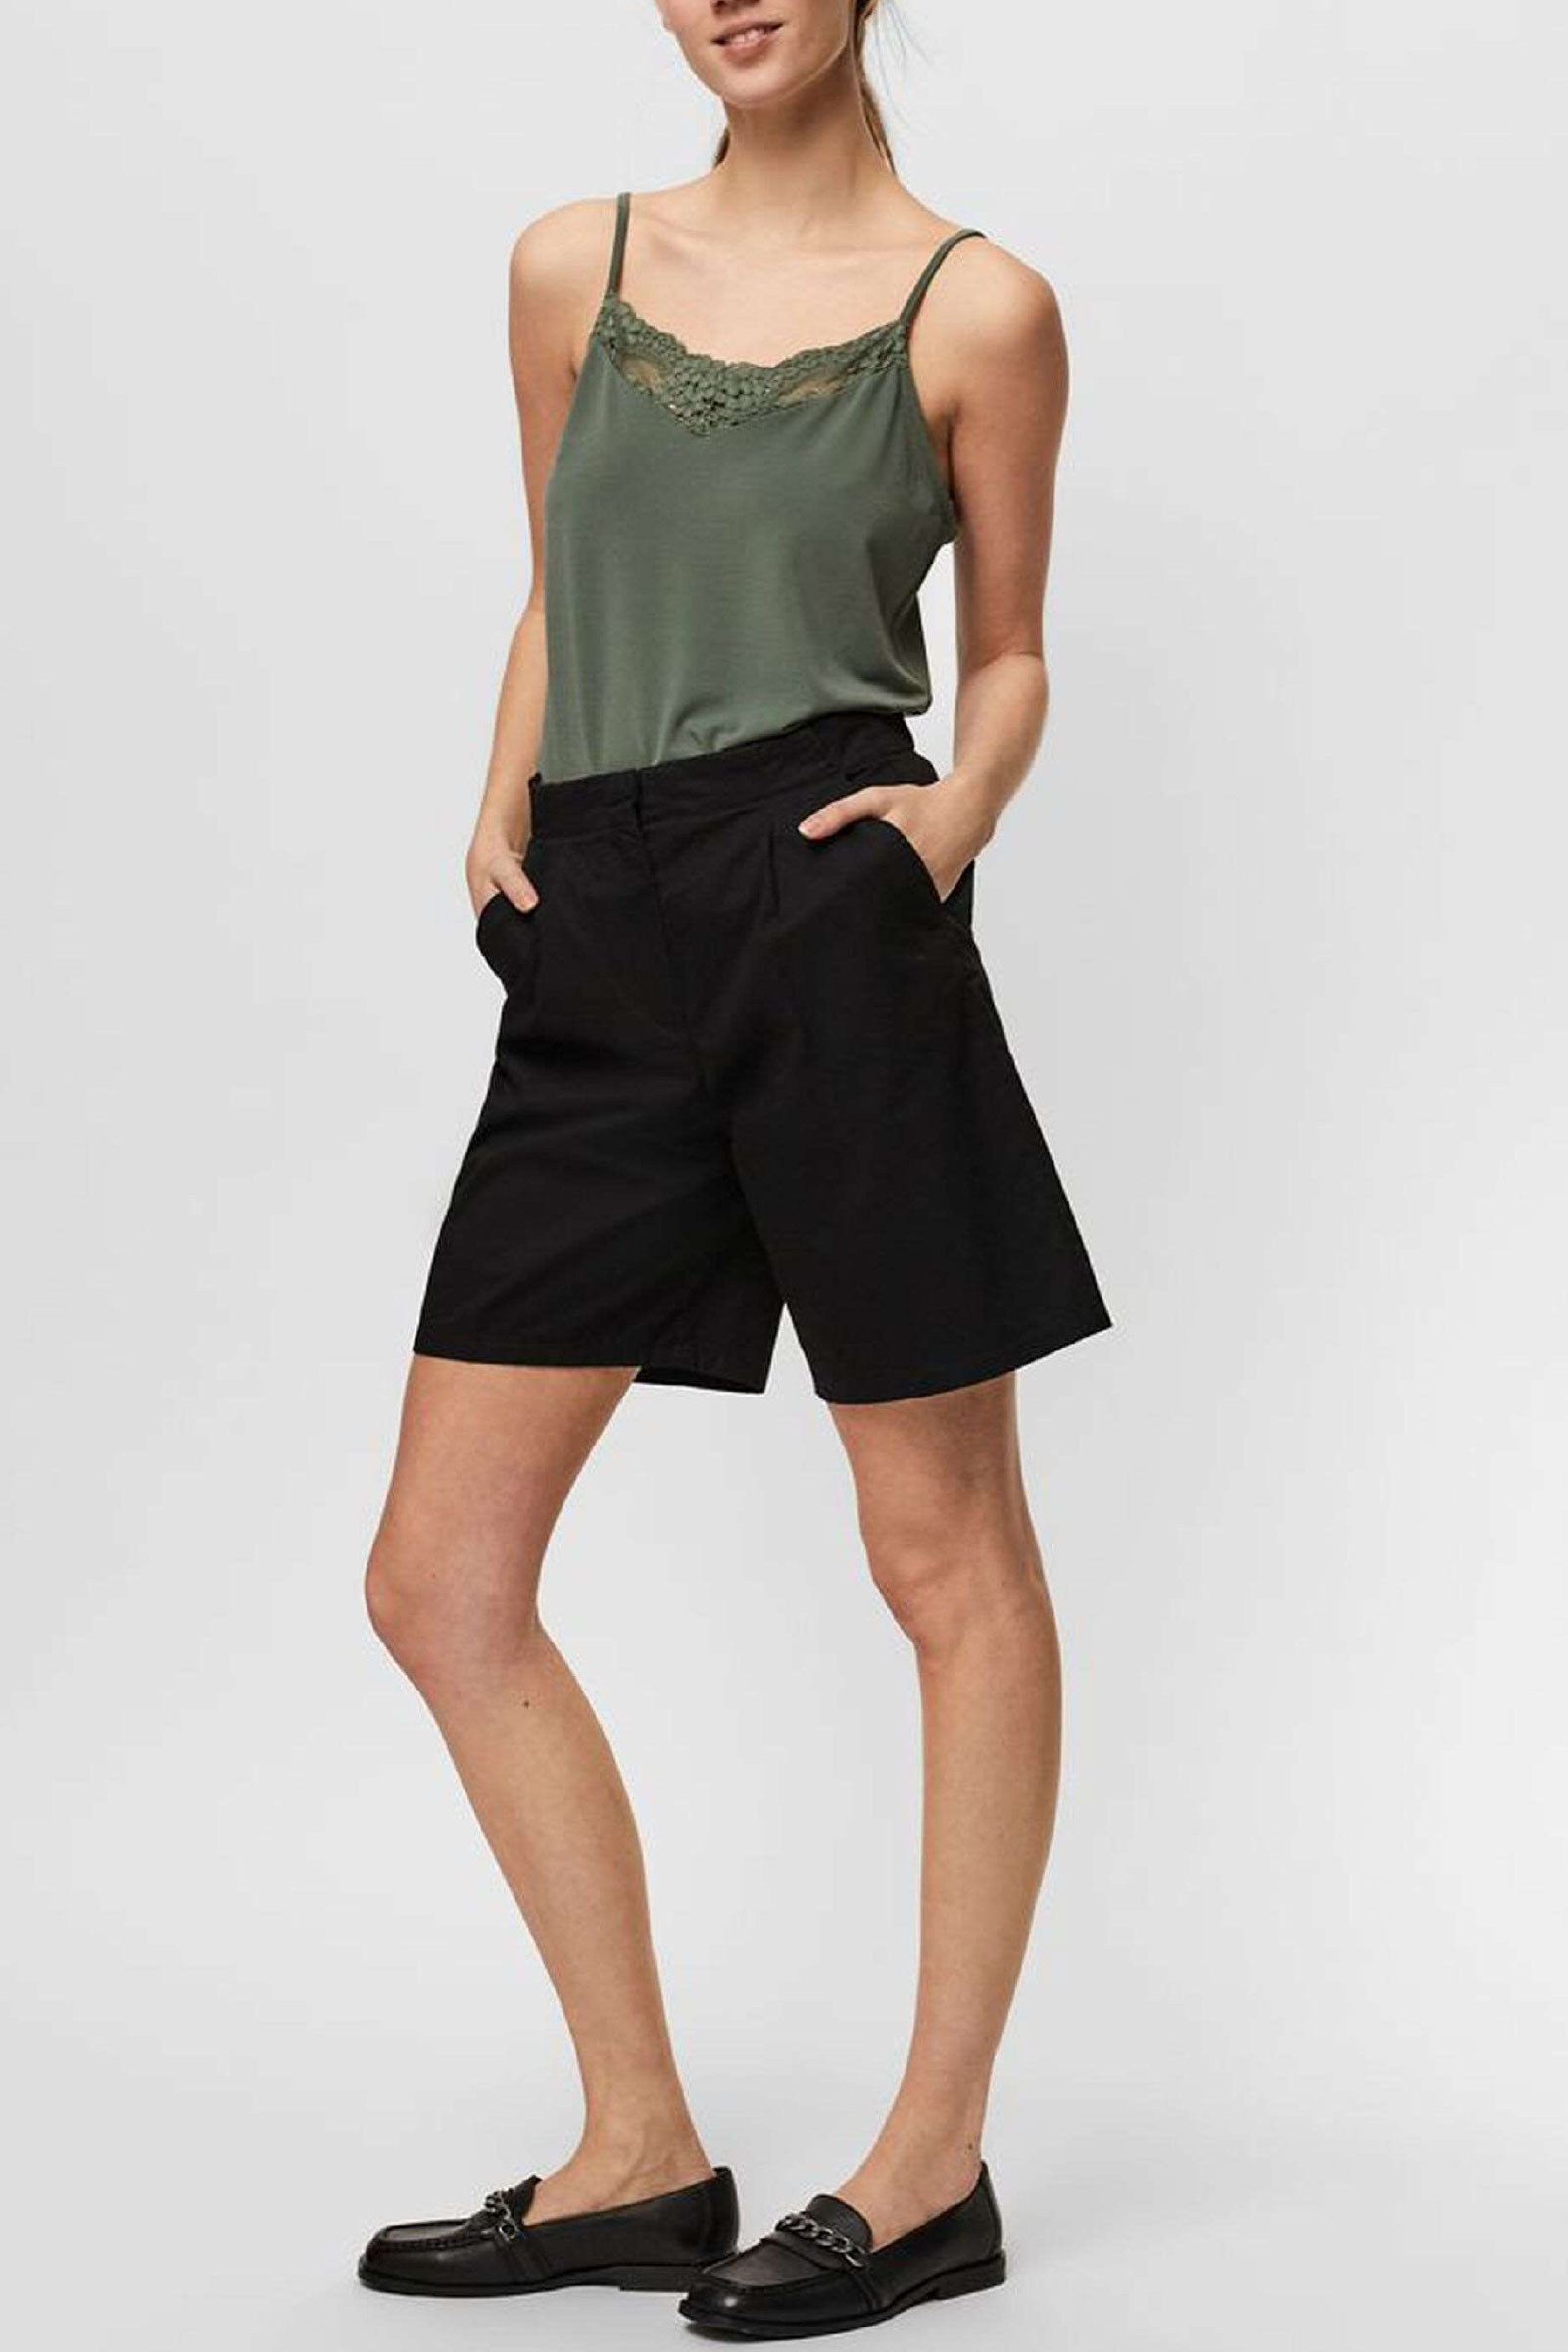 VERO MODA Shorts Woman VERO MODA |  | 10249137Black